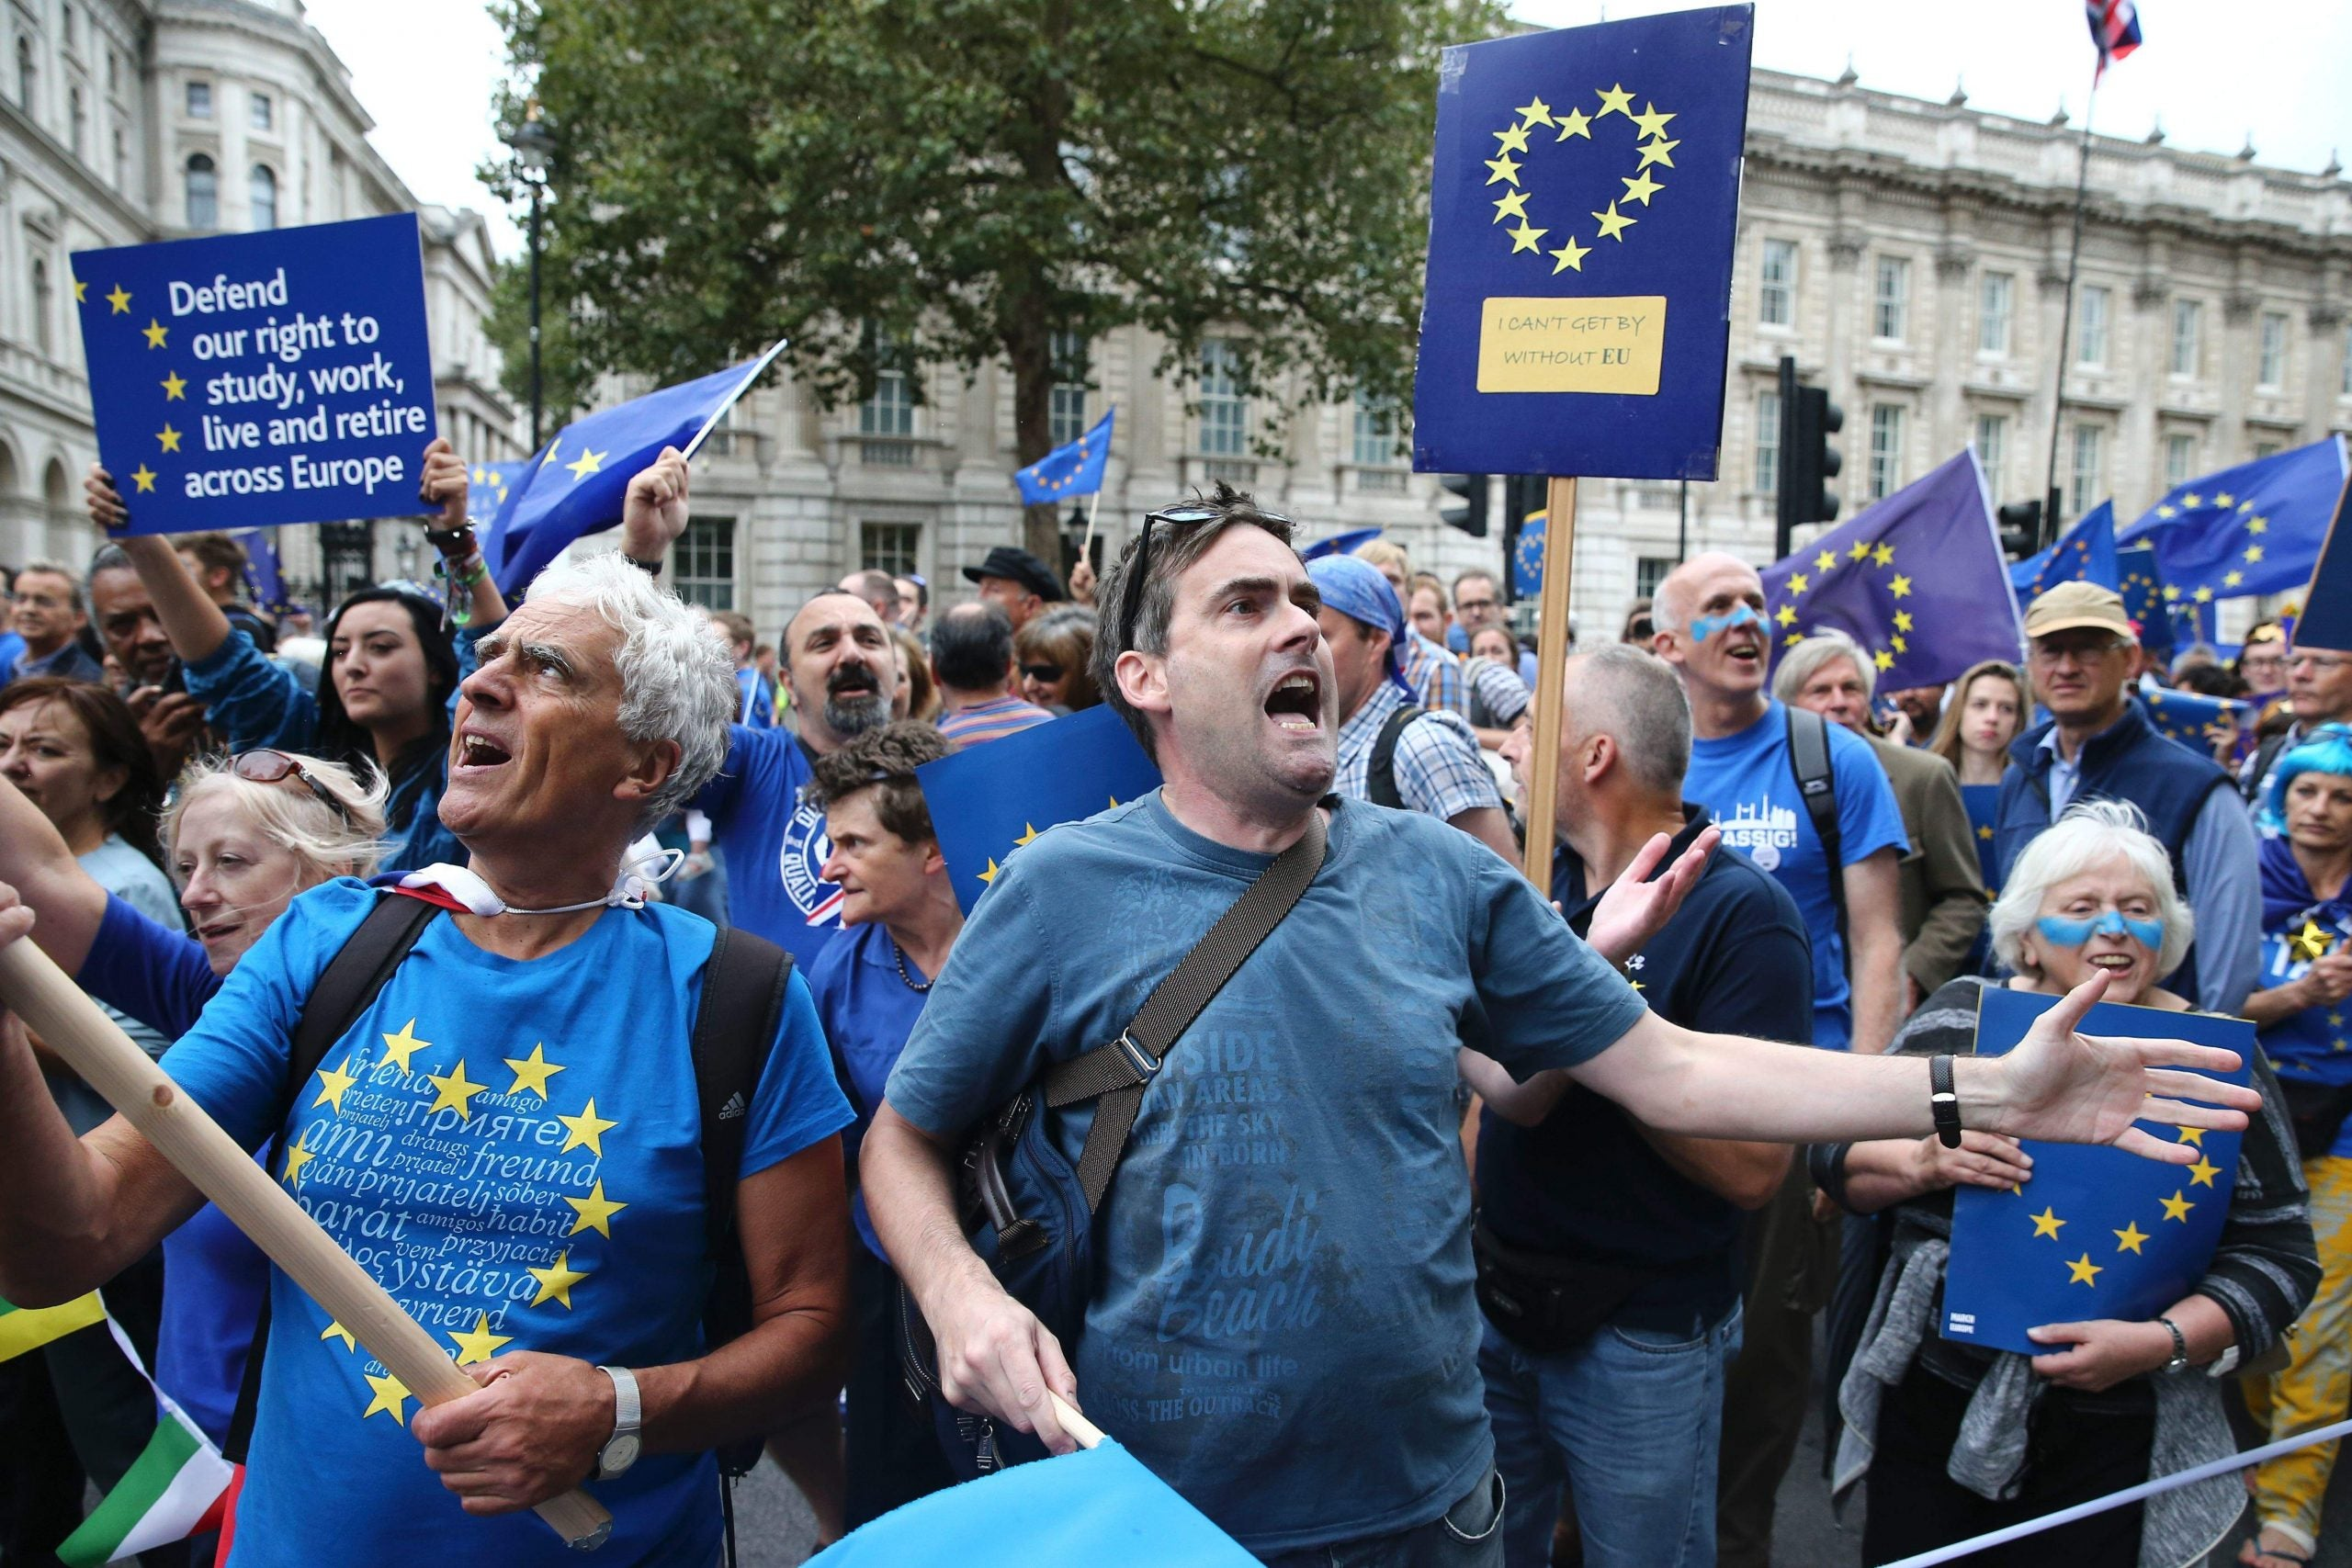 Leavers and Remainers can unite on this: EU nationals have a right to remain here